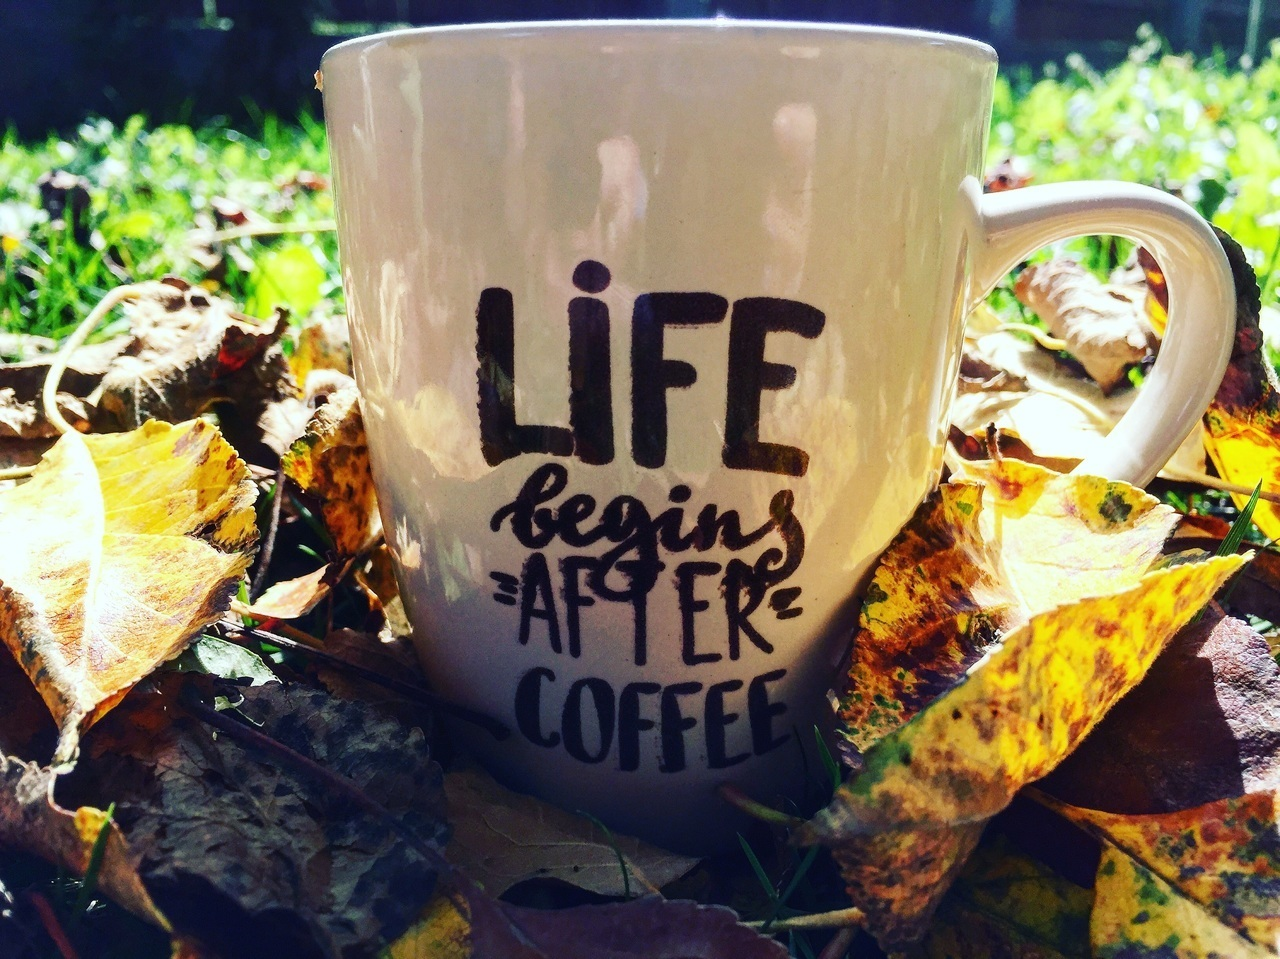 autumn and coffe time image